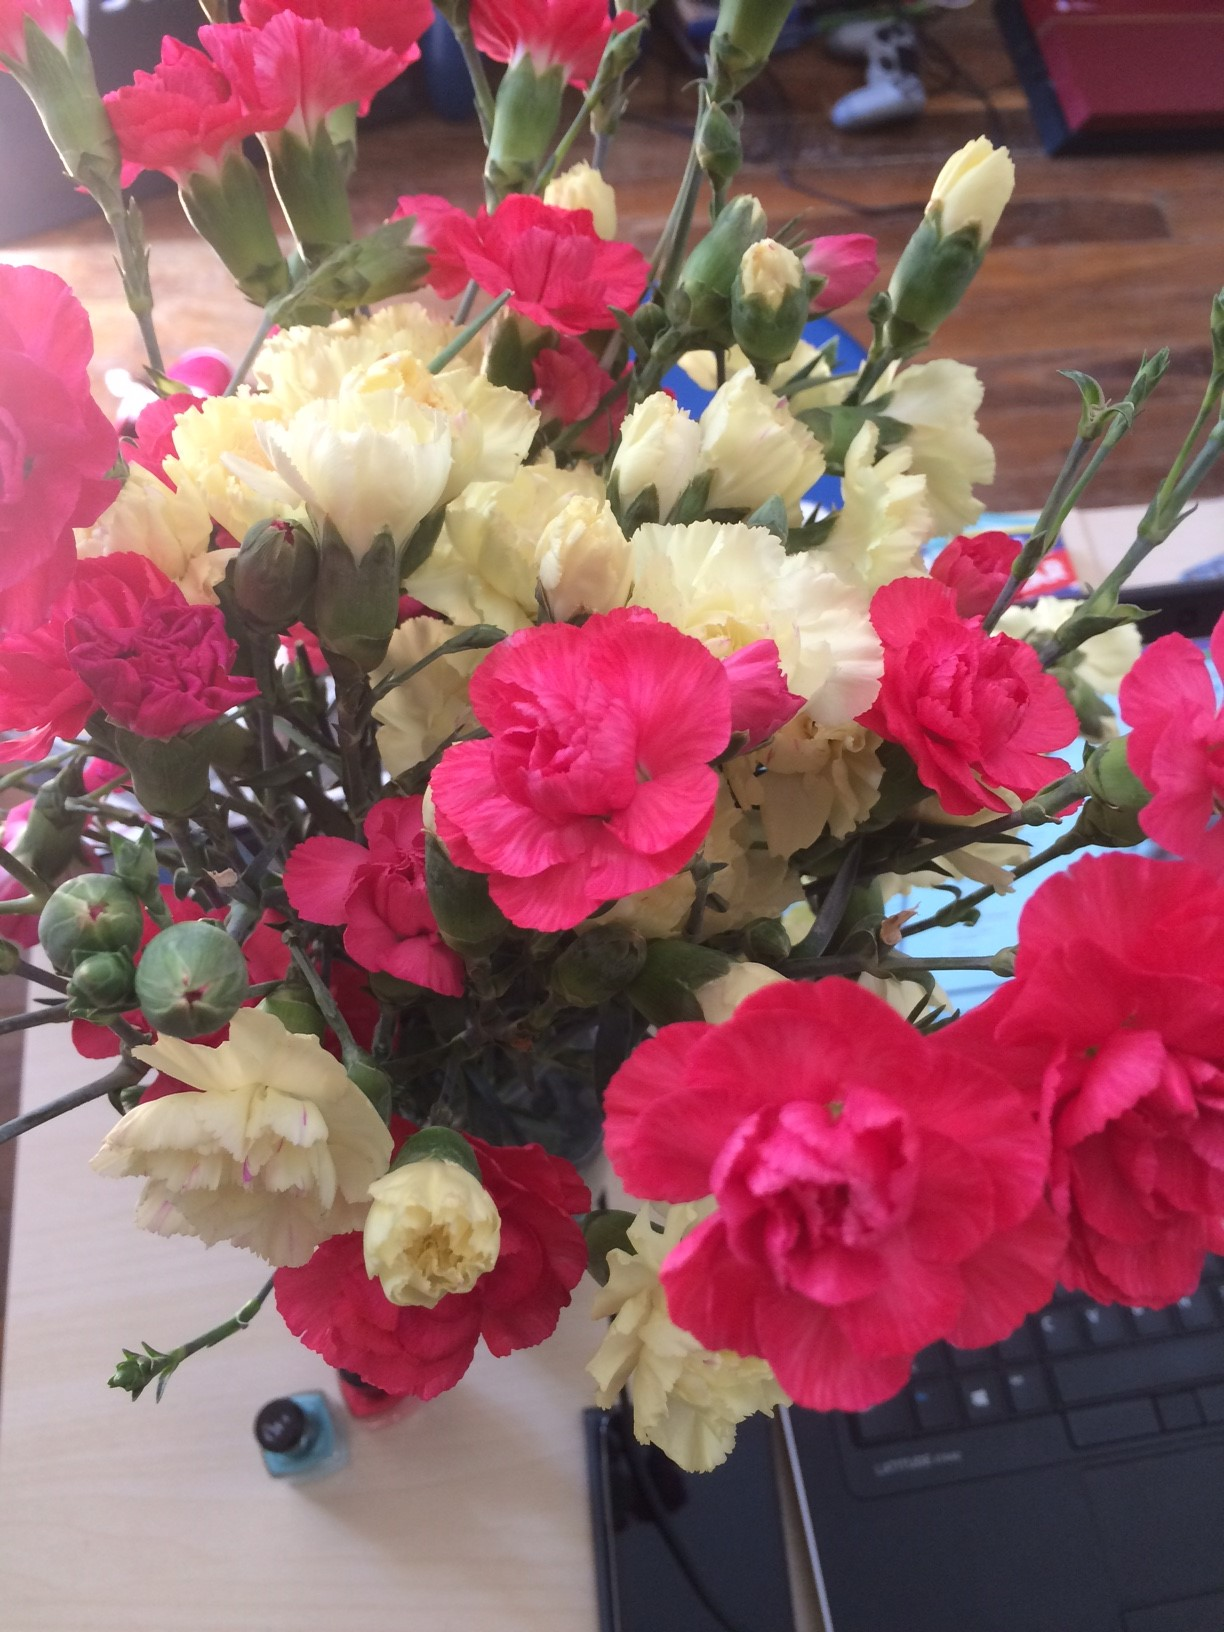 blog_sironimo_bouquet_avril_2017 (1)